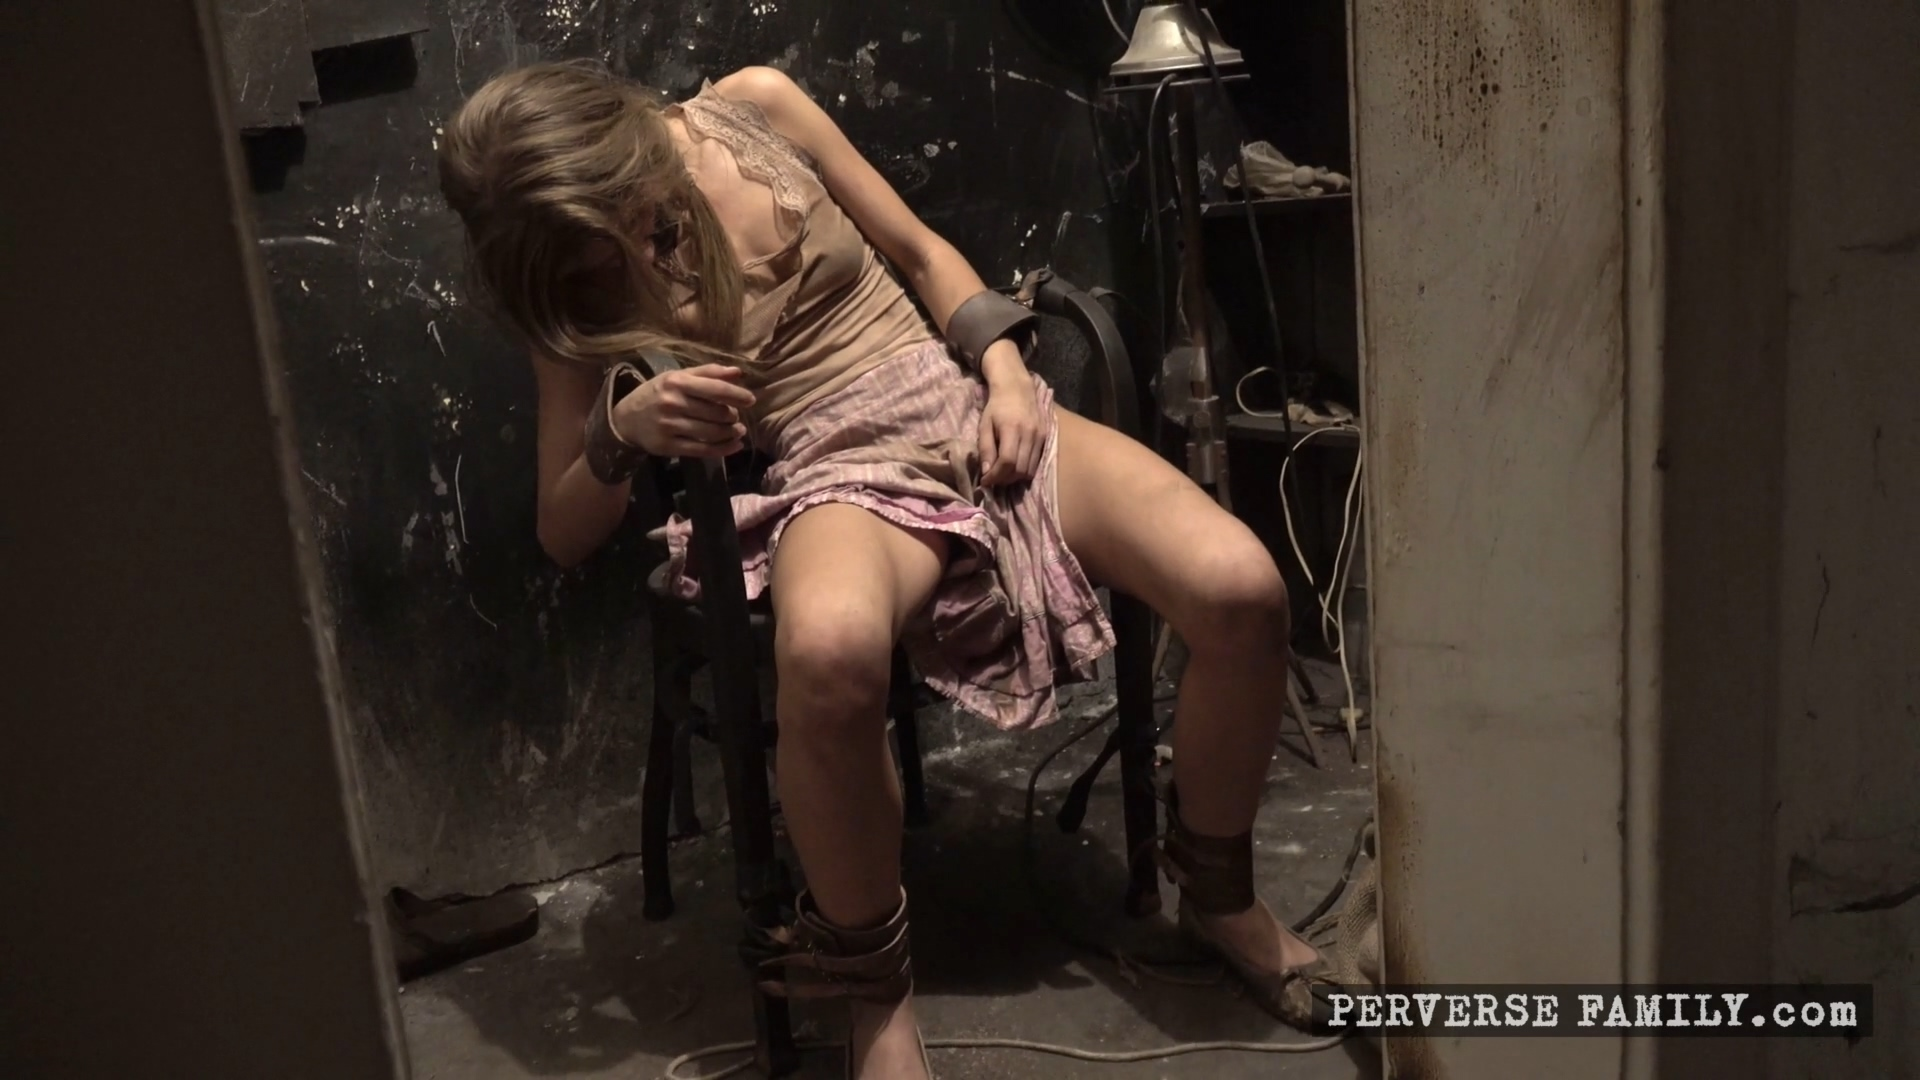 perverse-family-surprise-for-the-family-1920x1080_mp4_20191119_095614_156.jpg